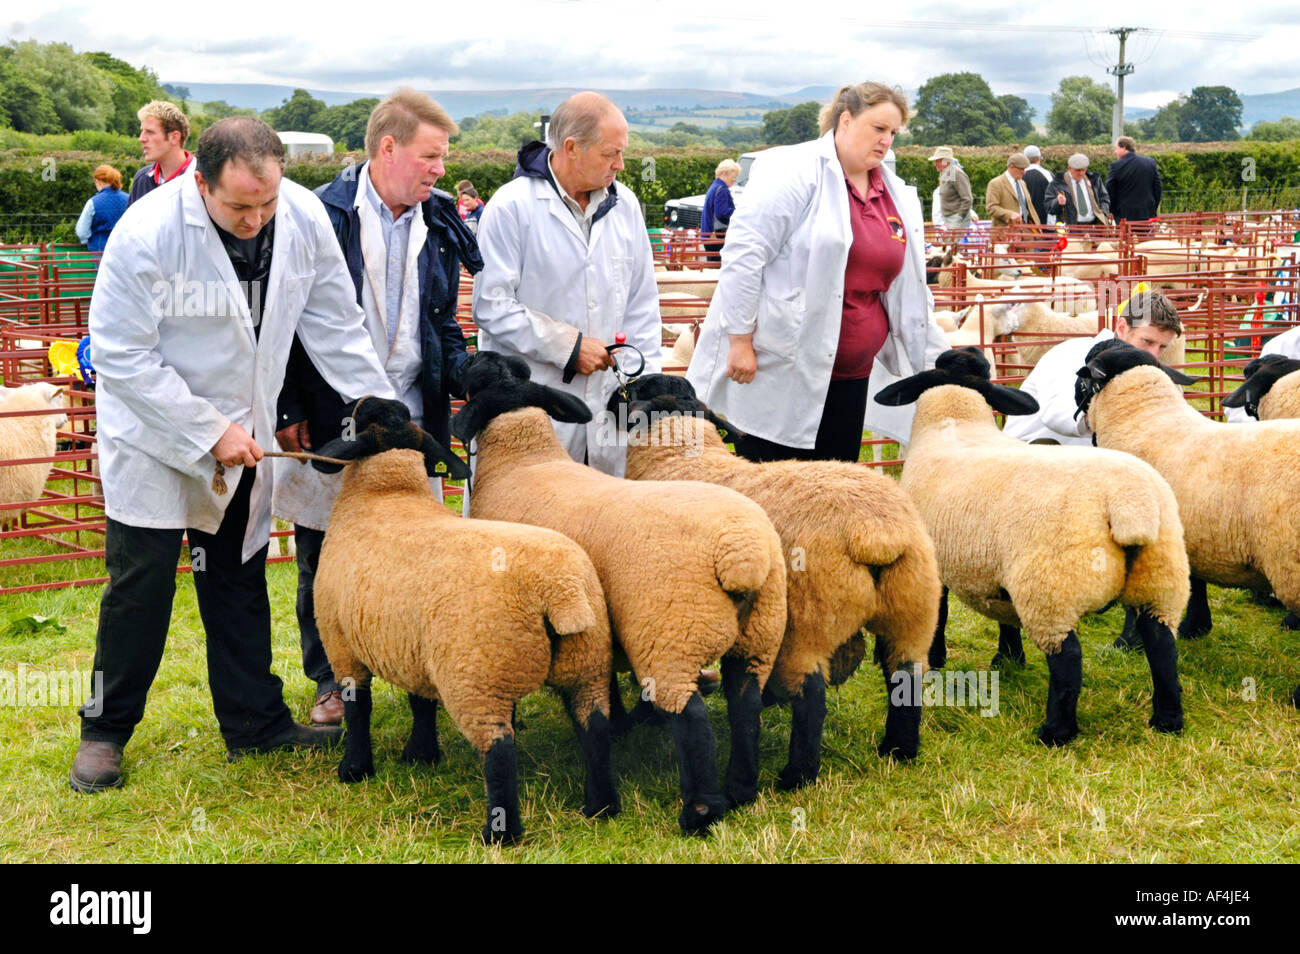 Farmers showing sheep at Brecknockshire Agricultural Society annual show in its 250th year in the market town of Brecon Powys - Stock Image